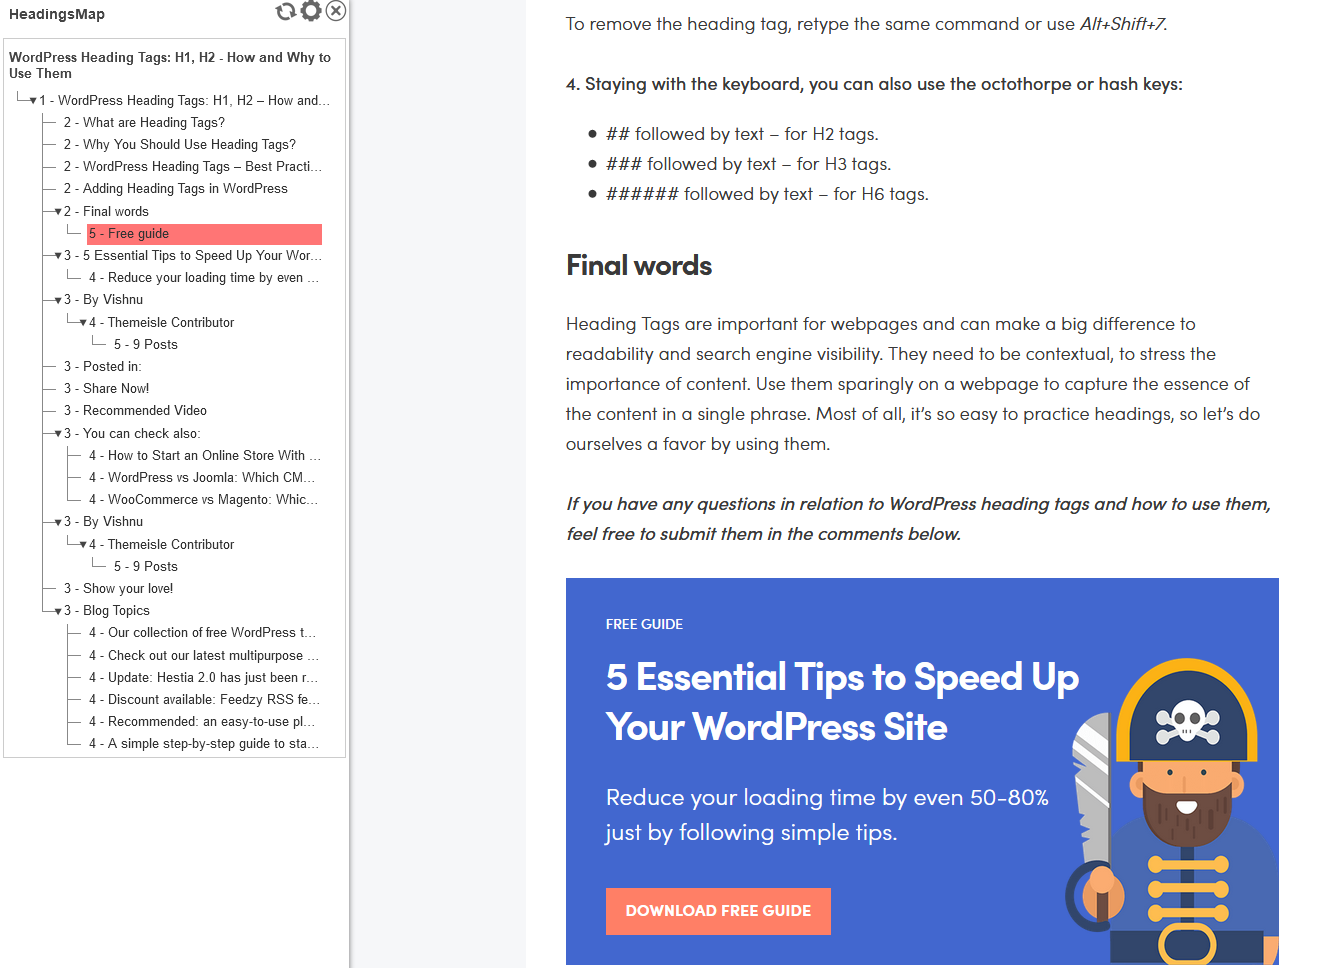 Using HeadingMaps to test the heading structure of a blog post